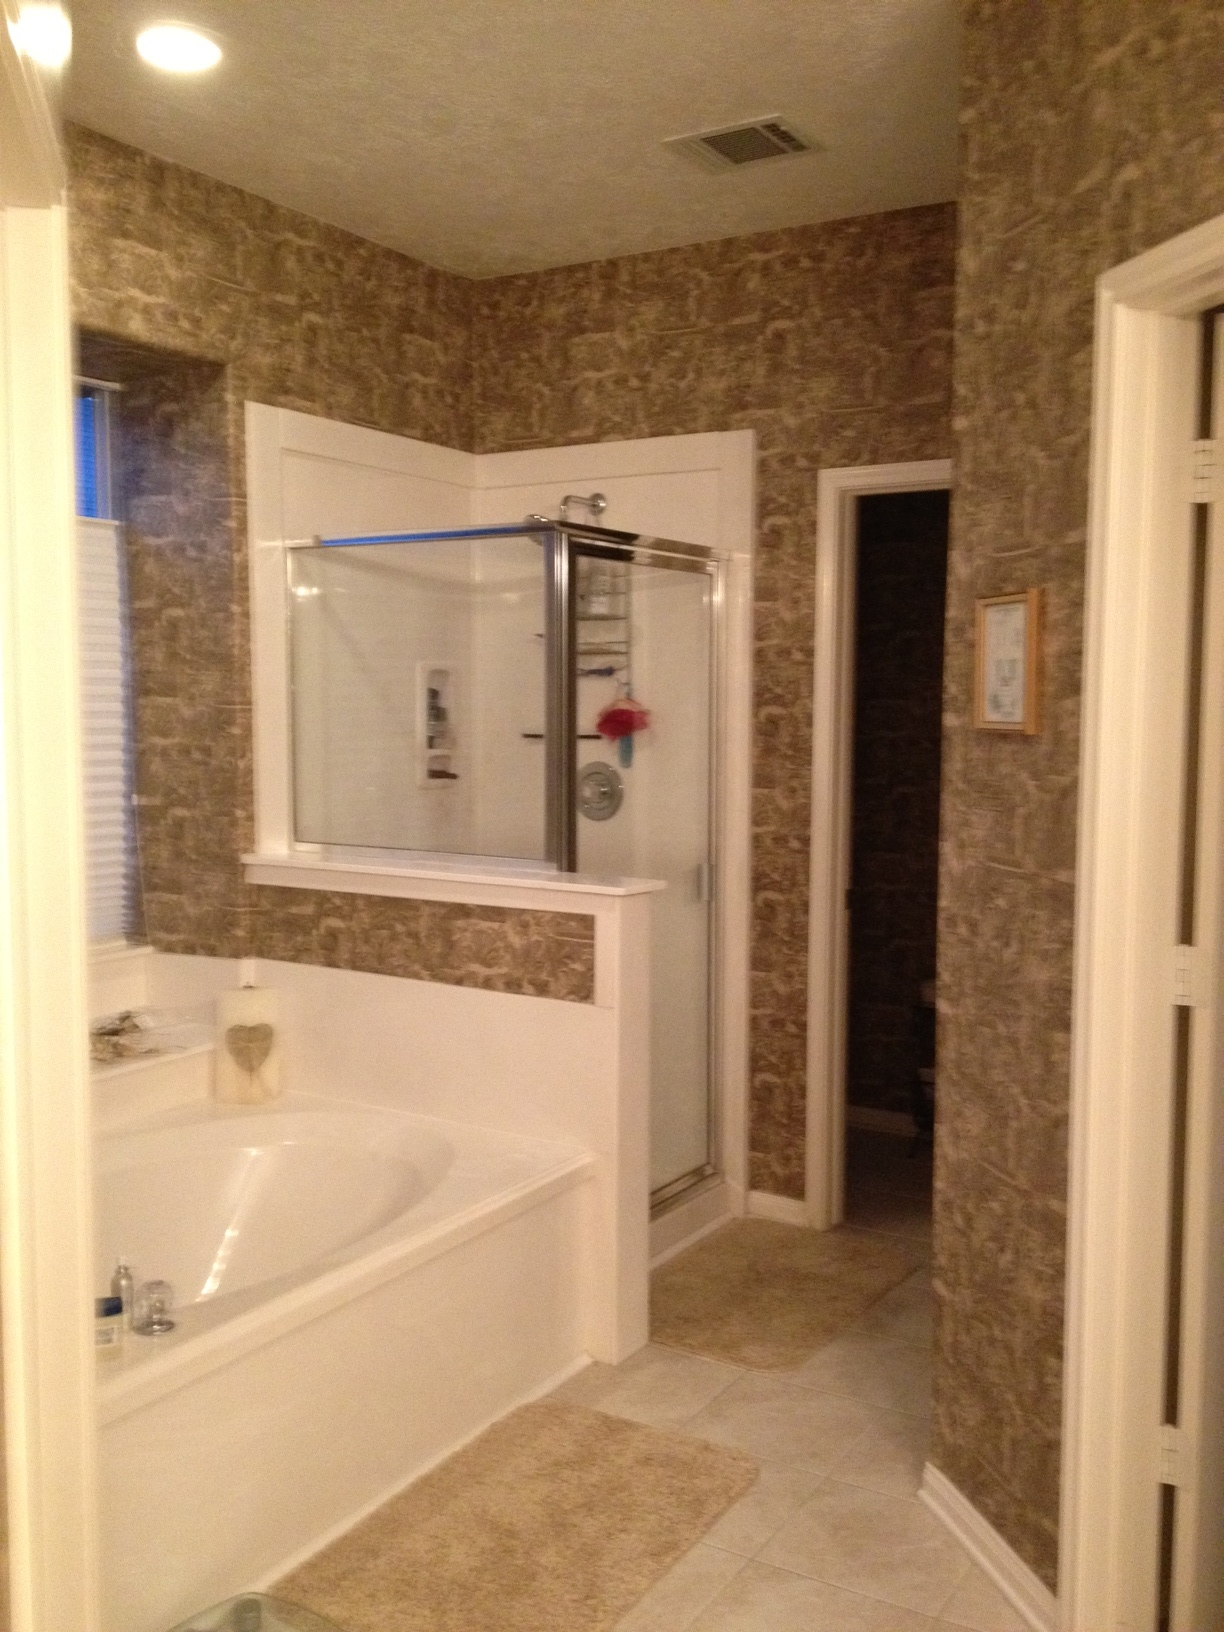 Download Wallpapers For Bathrooms Walls Gallery